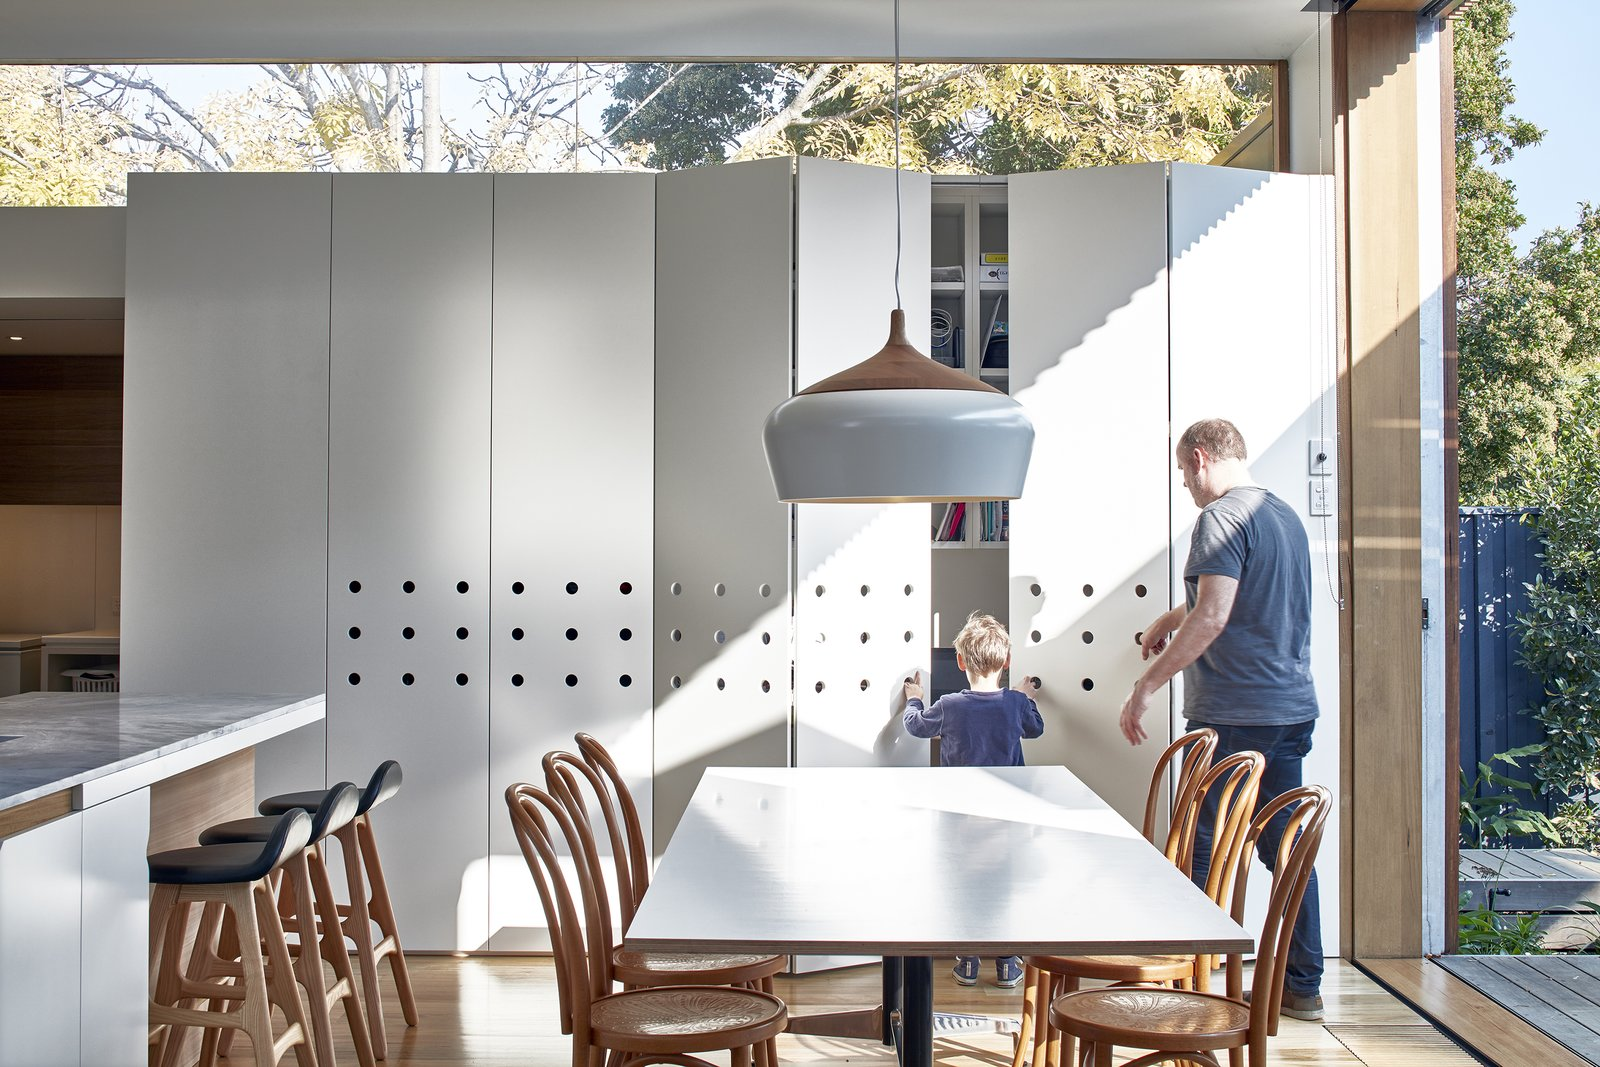 Dining Room, Pendant Lighting, Table, Chair, Light Hardwood Floor, Storage, and Stools The walls, ceilings, windows, and cabinetry were all strategically positioned to unveil views to the outdoors.   Best Photos from Wooden Screens Shade This Sustainable Melbourne Residence